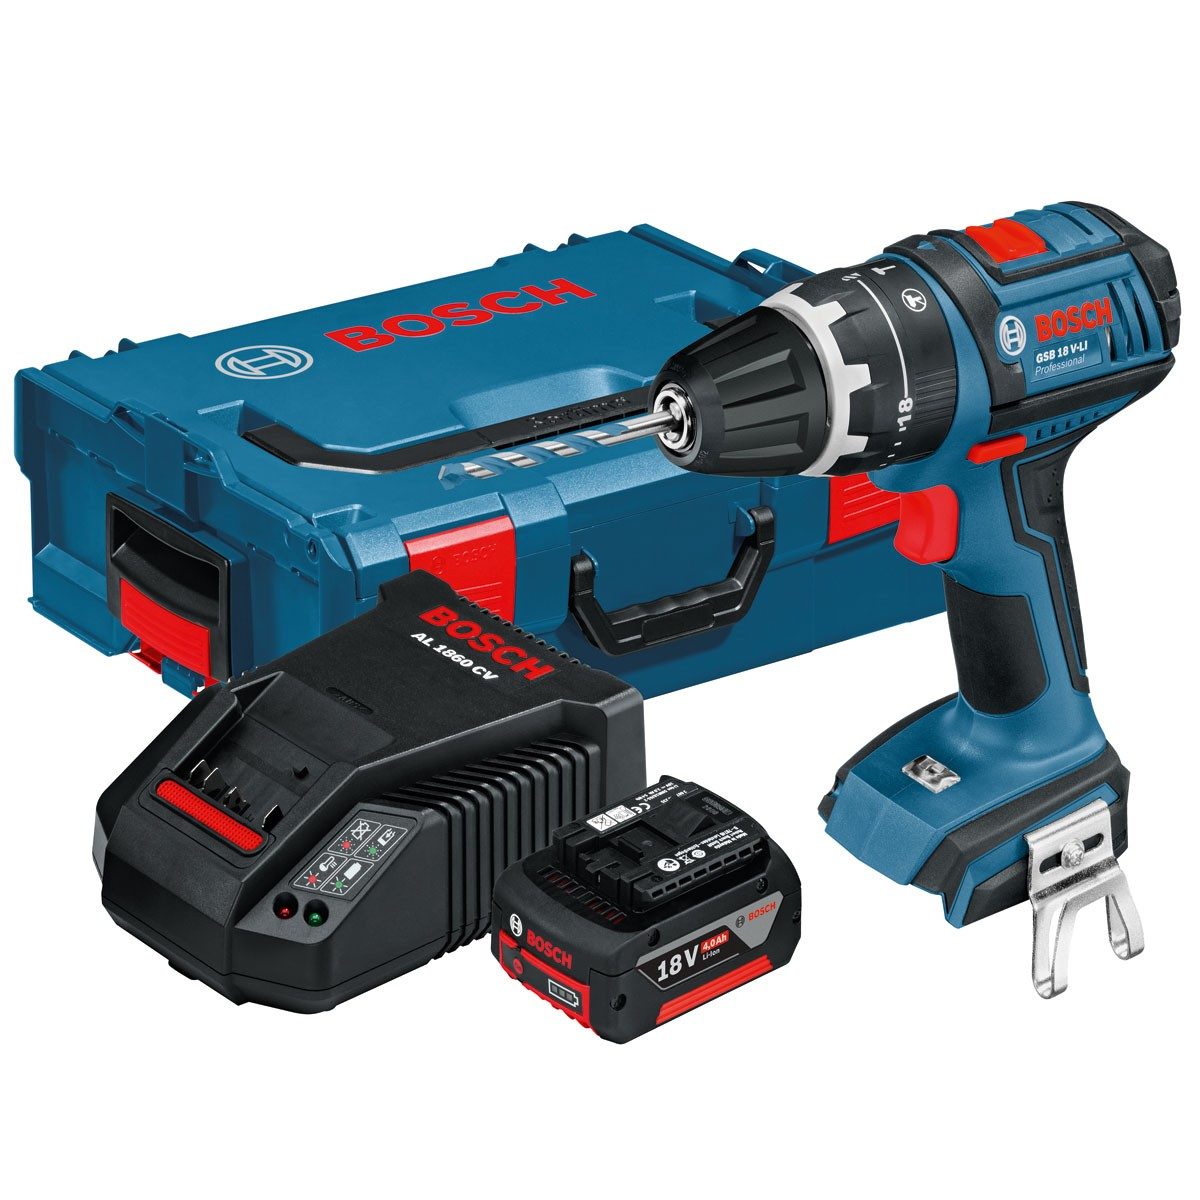 bosch gsb 18 v li combi drill dynamic series inc 1x 4ah battery 060186717e powertool world. Black Bedroom Furniture Sets. Home Design Ideas